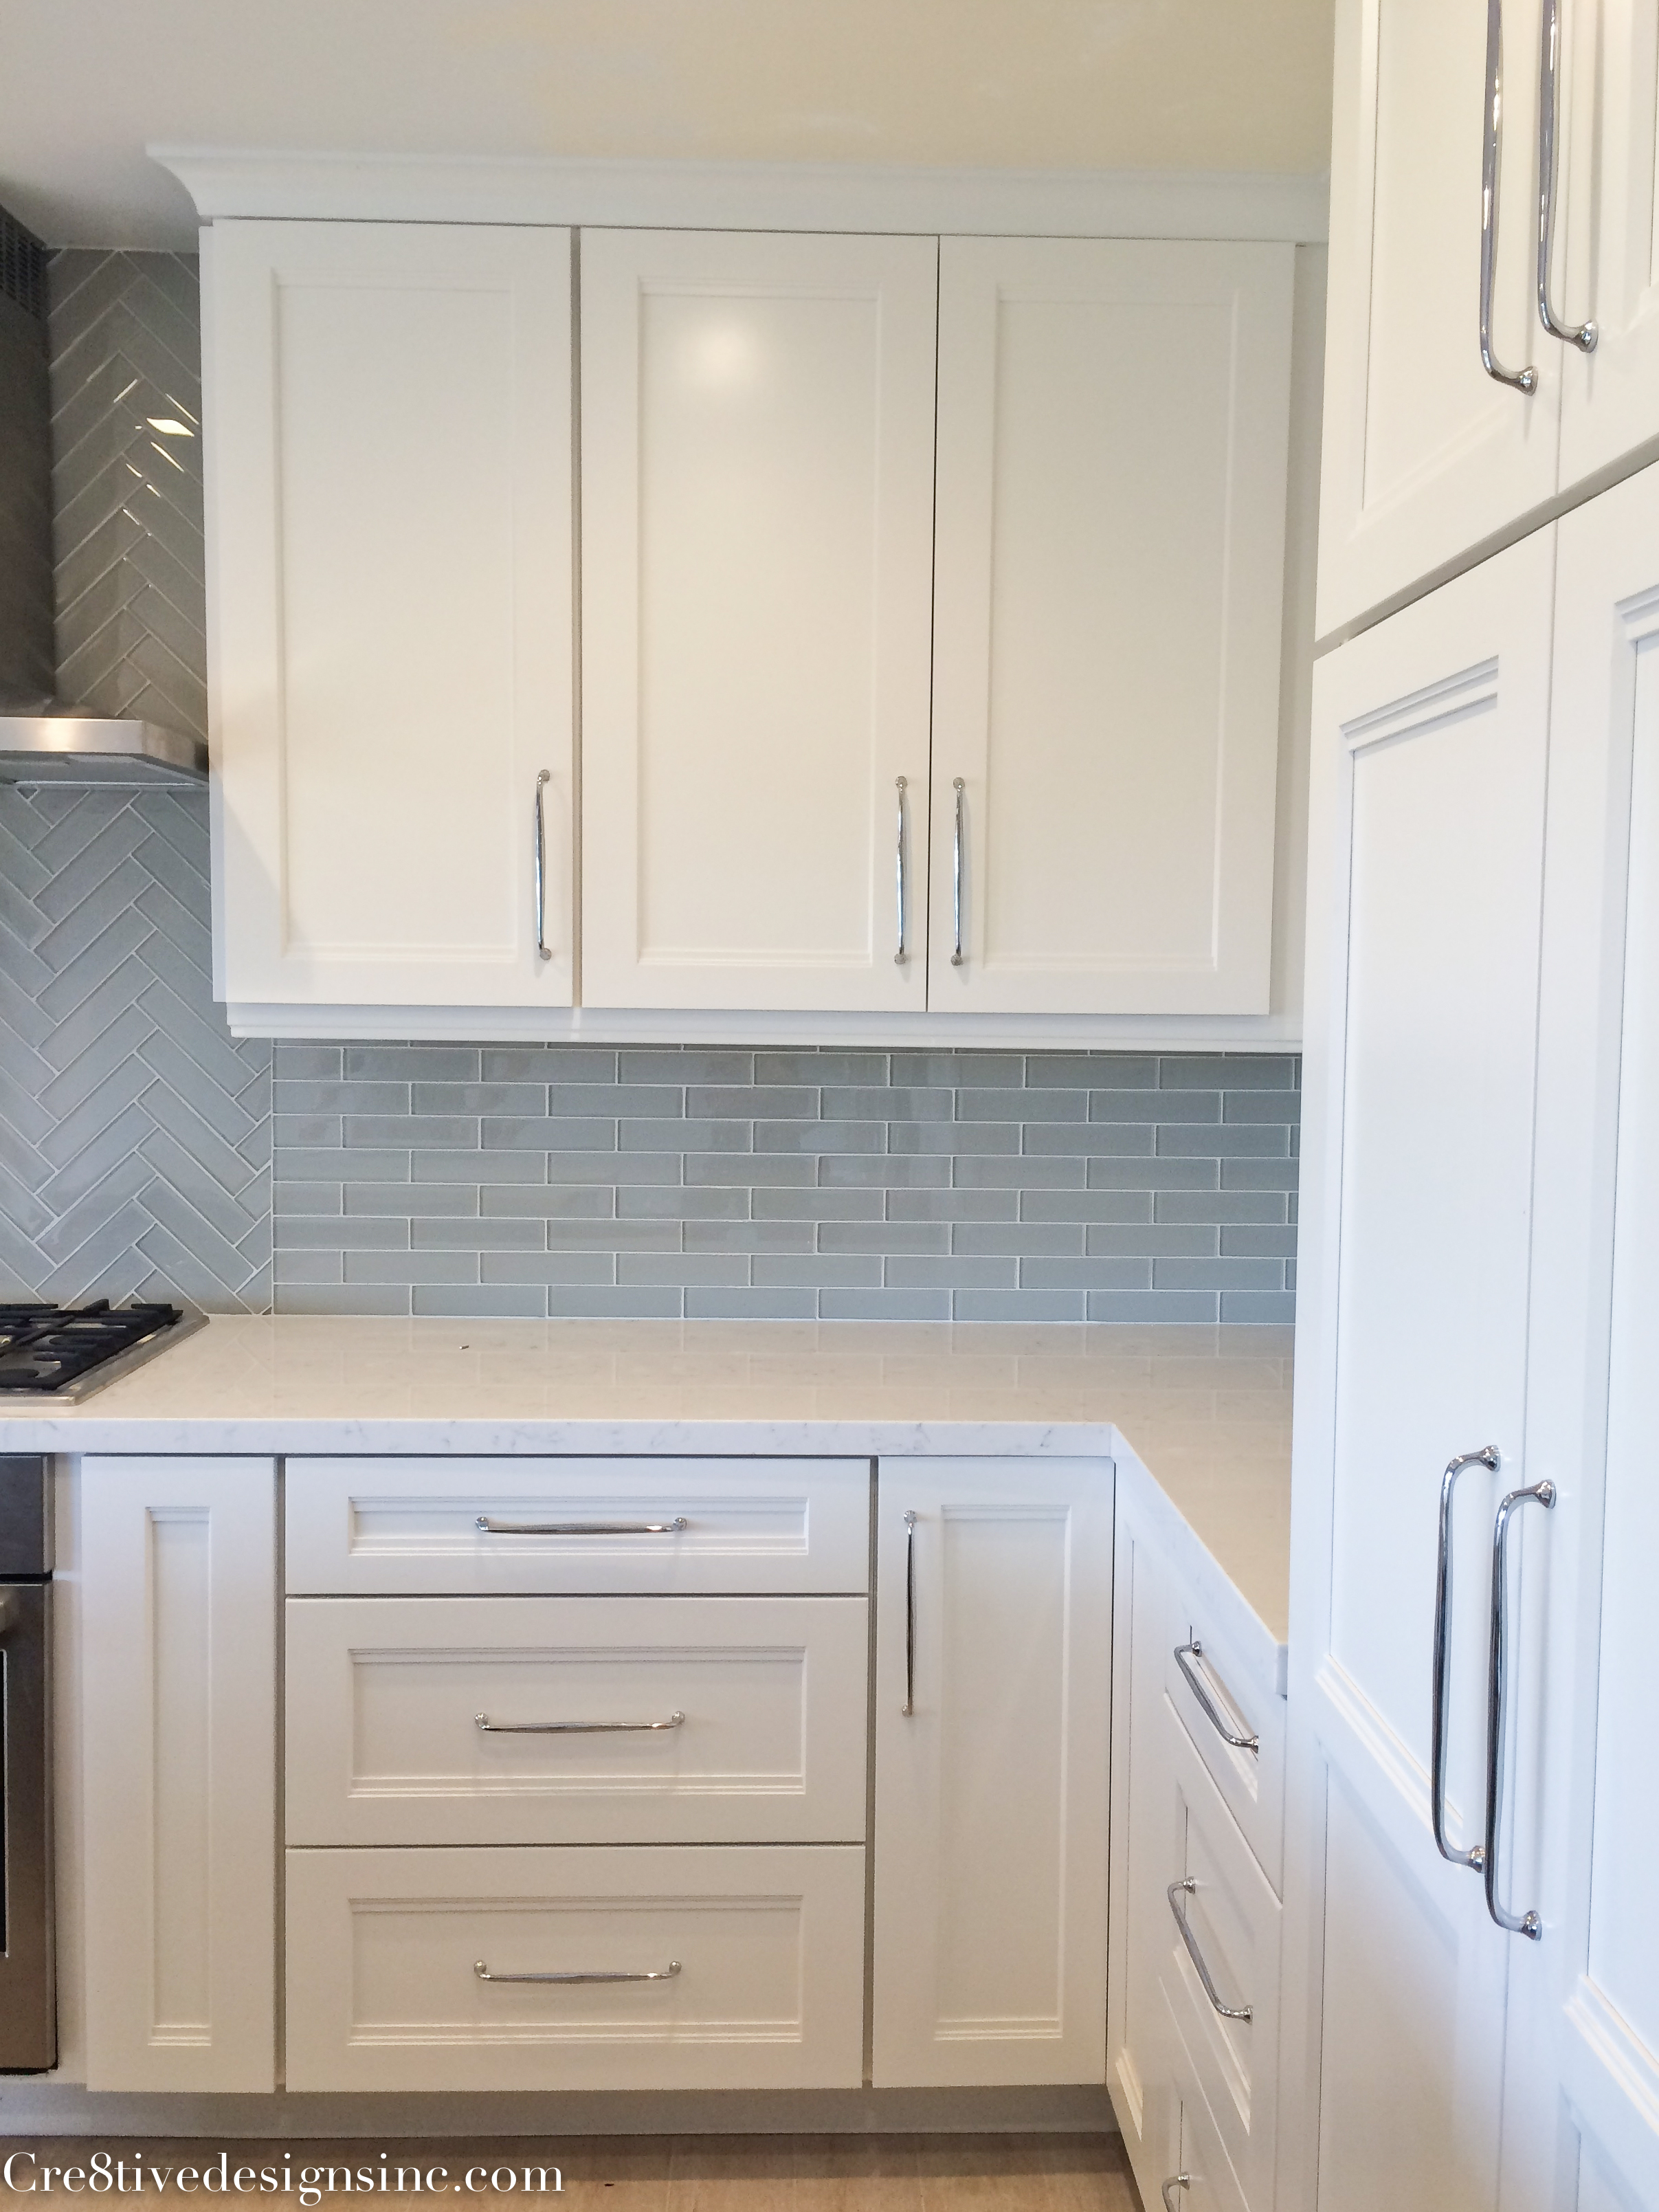 Kitchen remodel using Lowes Cabinets